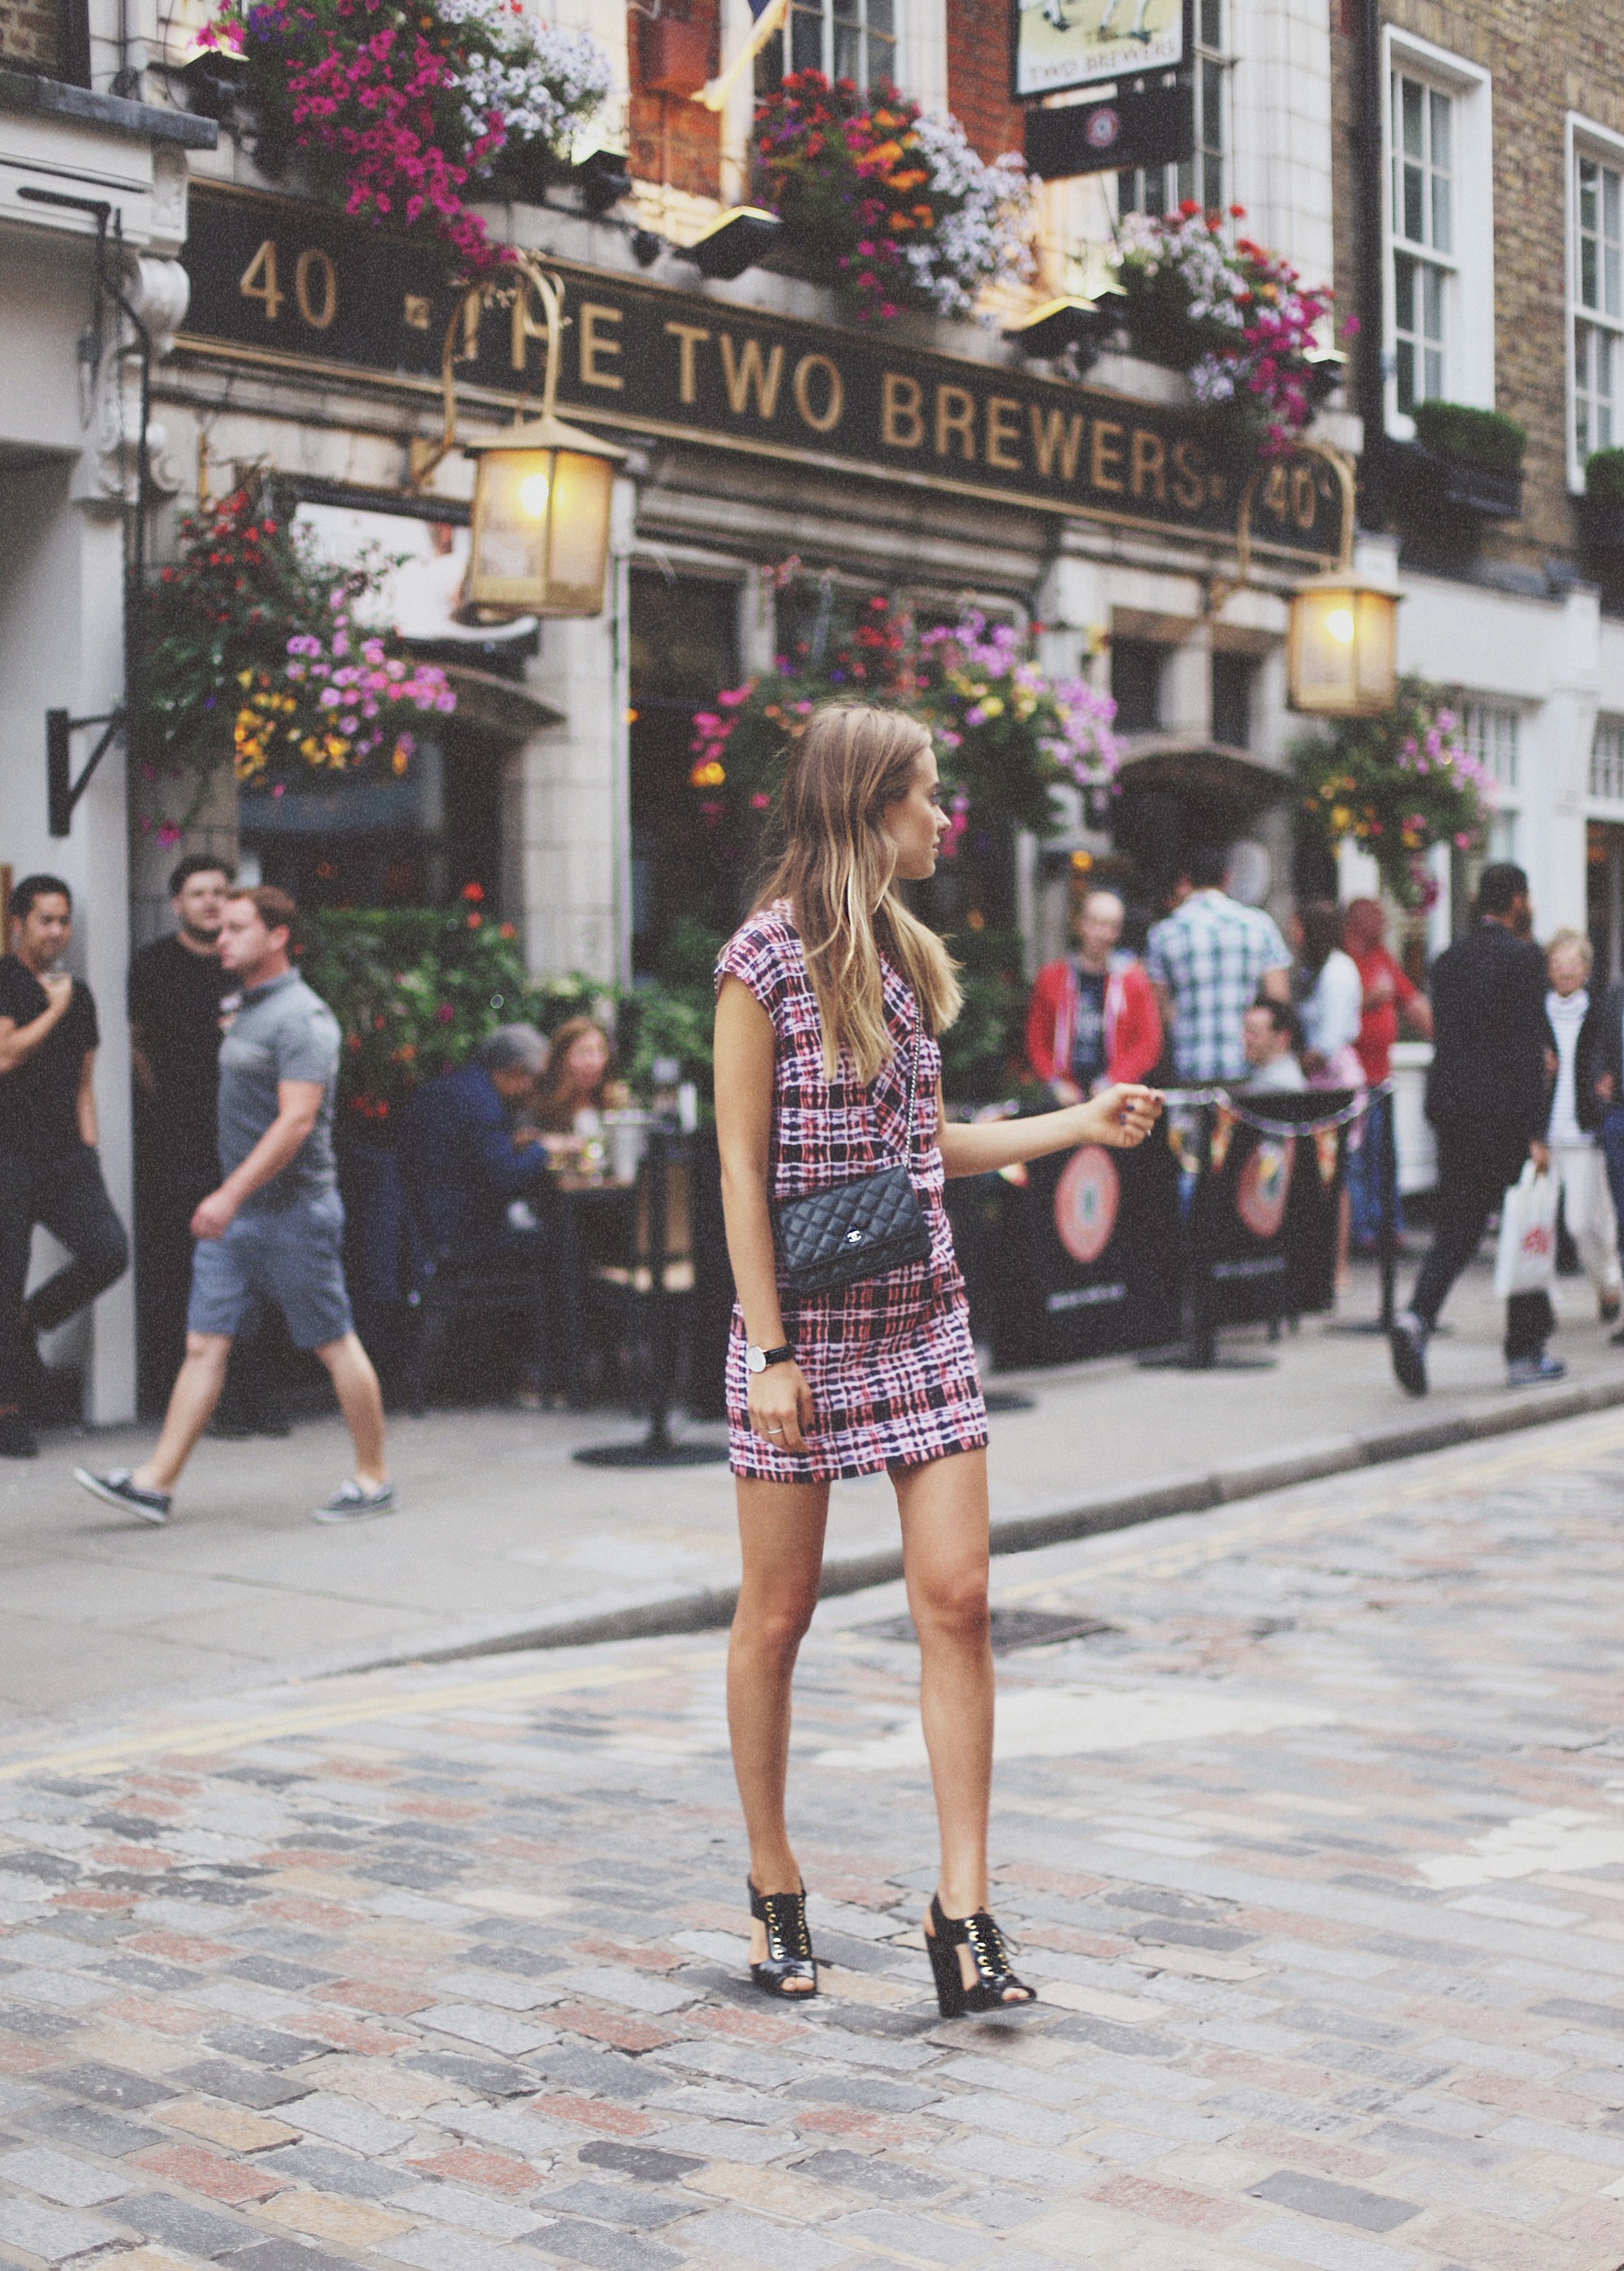 Sonya Esman is wearing a plaid dress from Finders Keepers, shoes from ASOS and a bag from Chanel